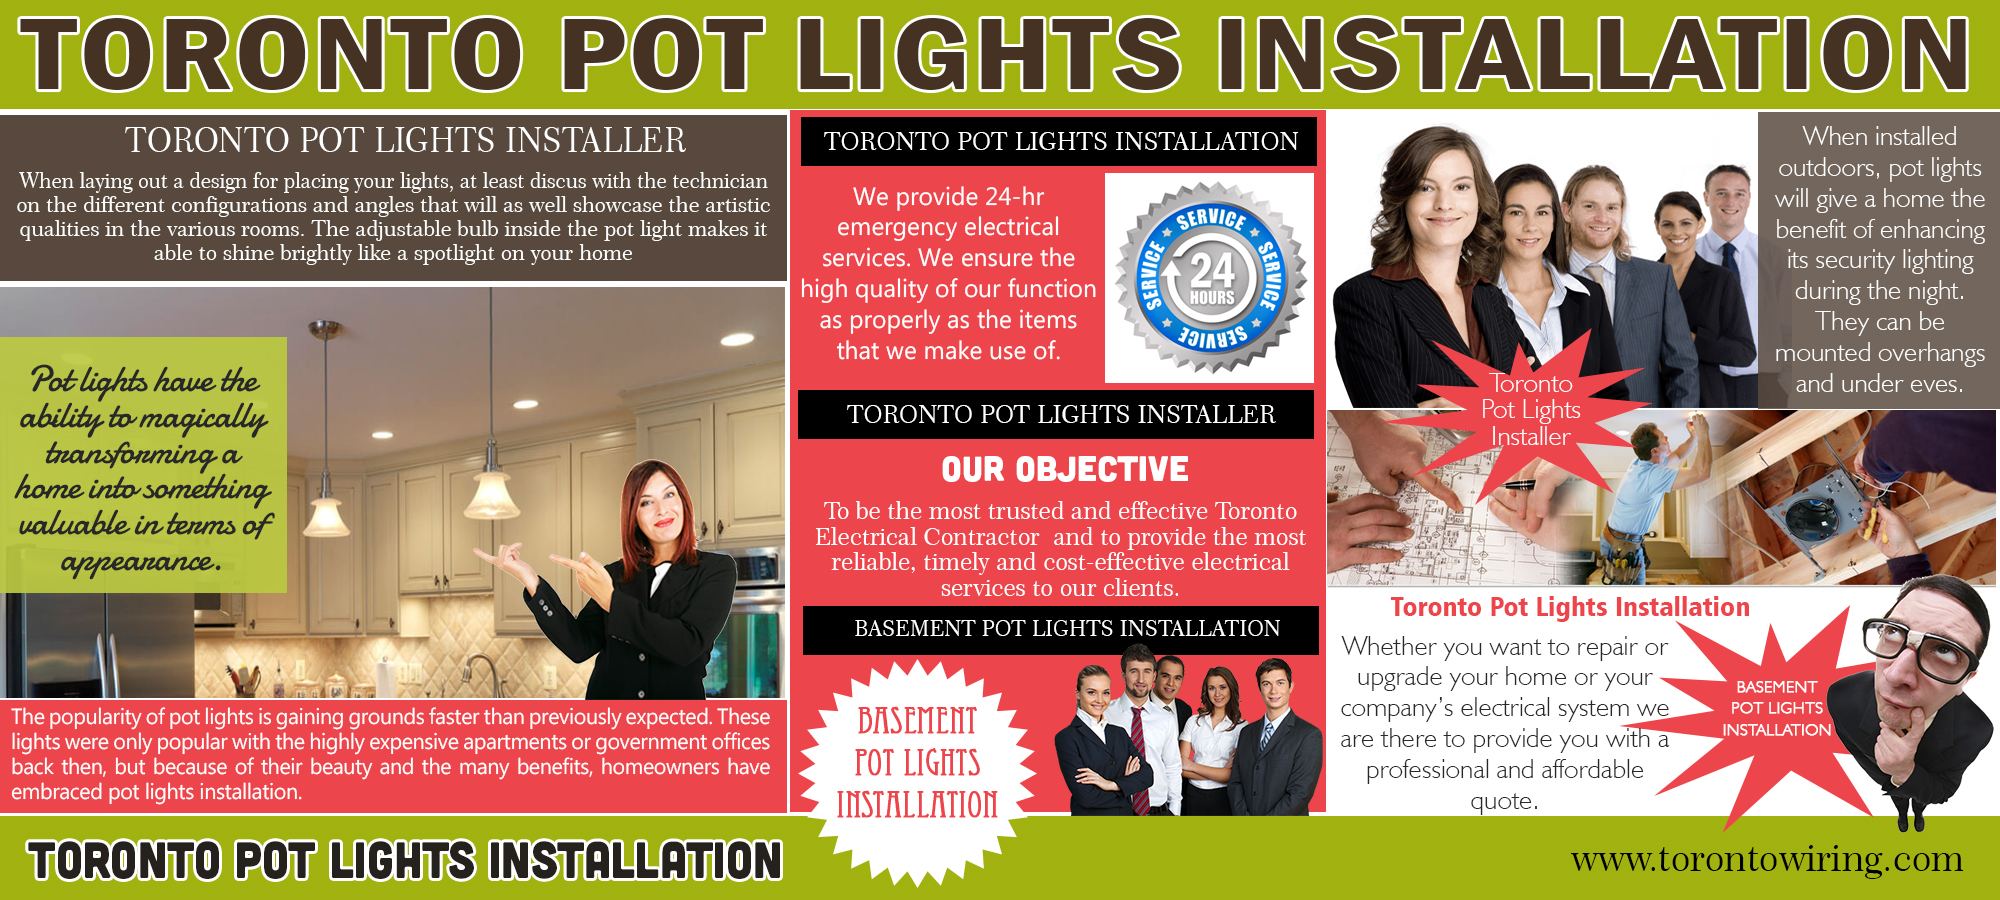 Toronto Pot Lights Installation